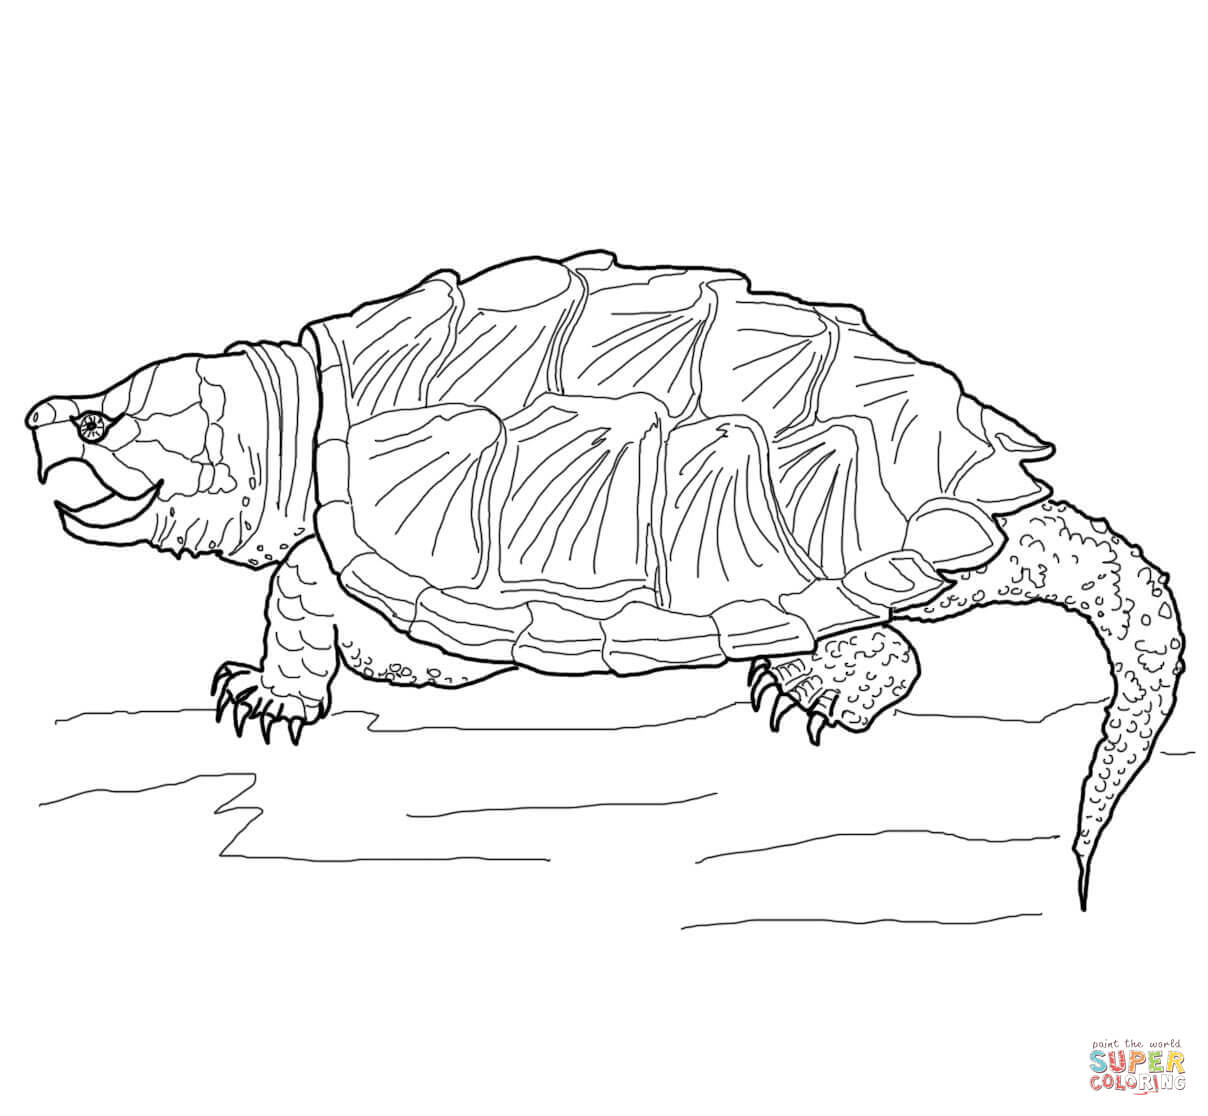 Alligator Snapping Turtle Coloring Page